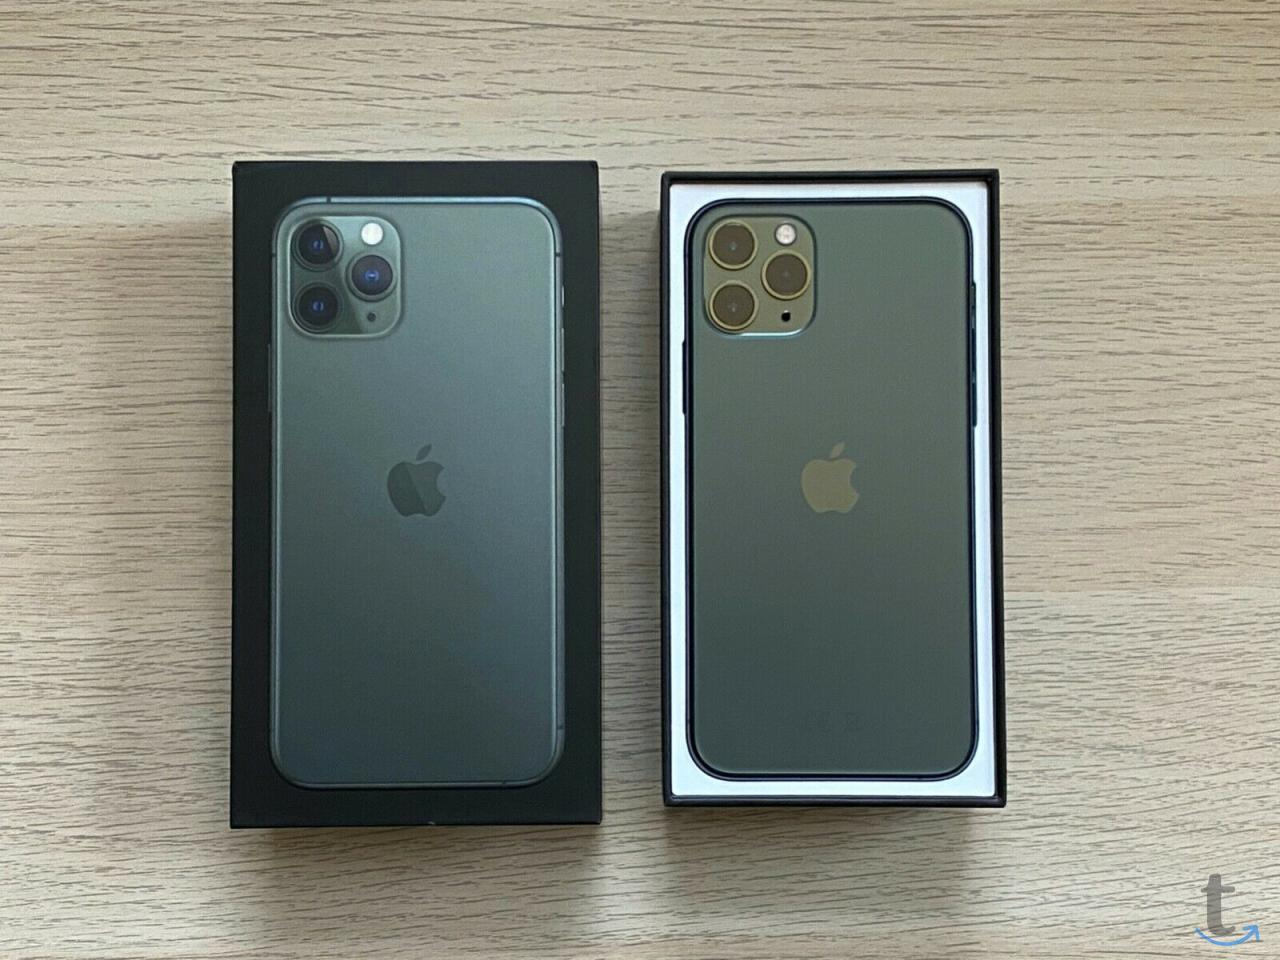 продажа iPhone 11 64GB.$470 iPho...